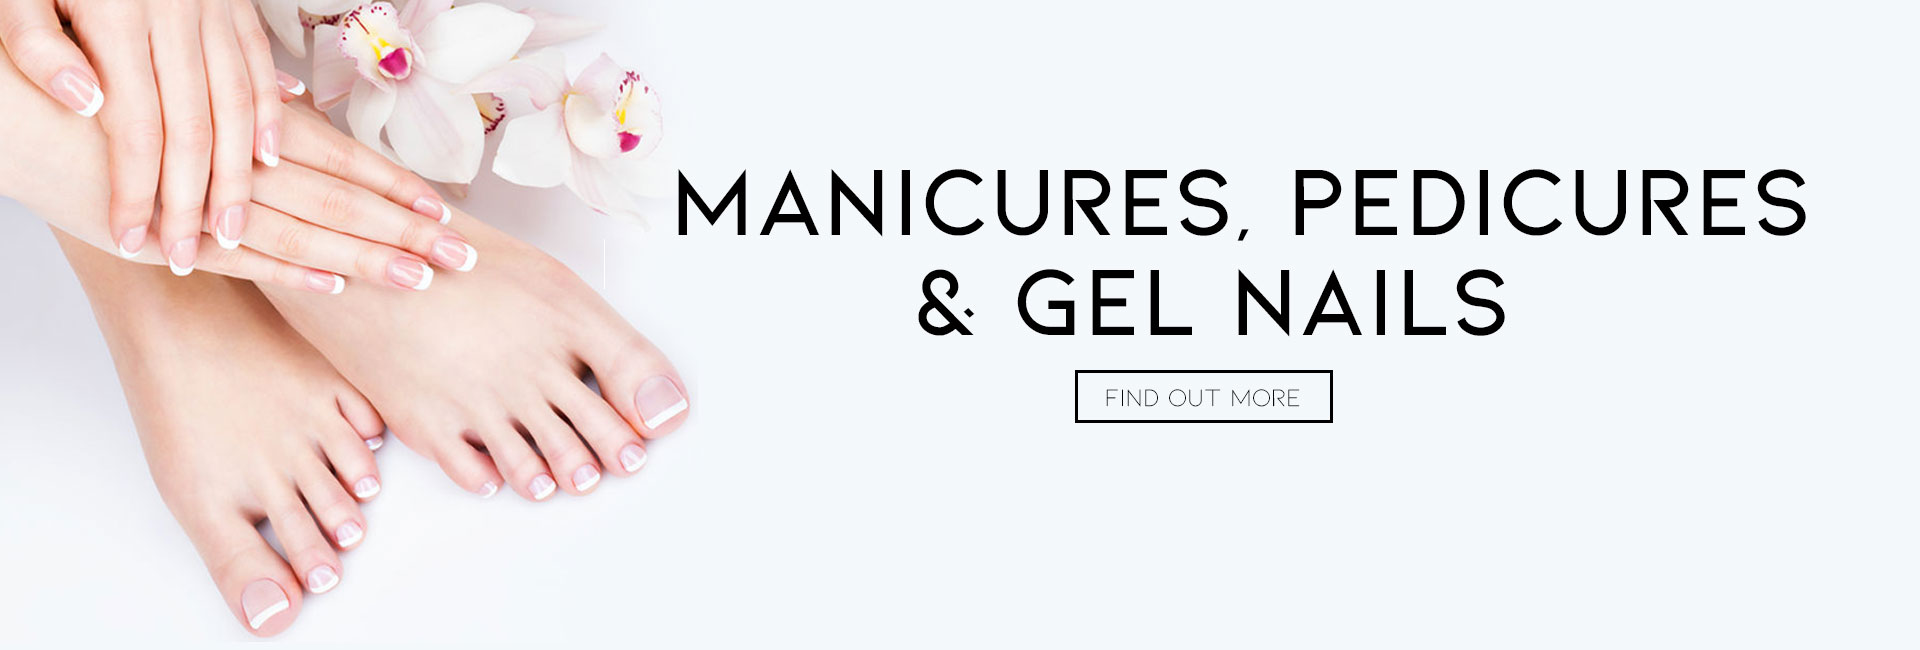 Manicures Pedicures Gel Nails at melanie richards hair and beauty salon in peterborough